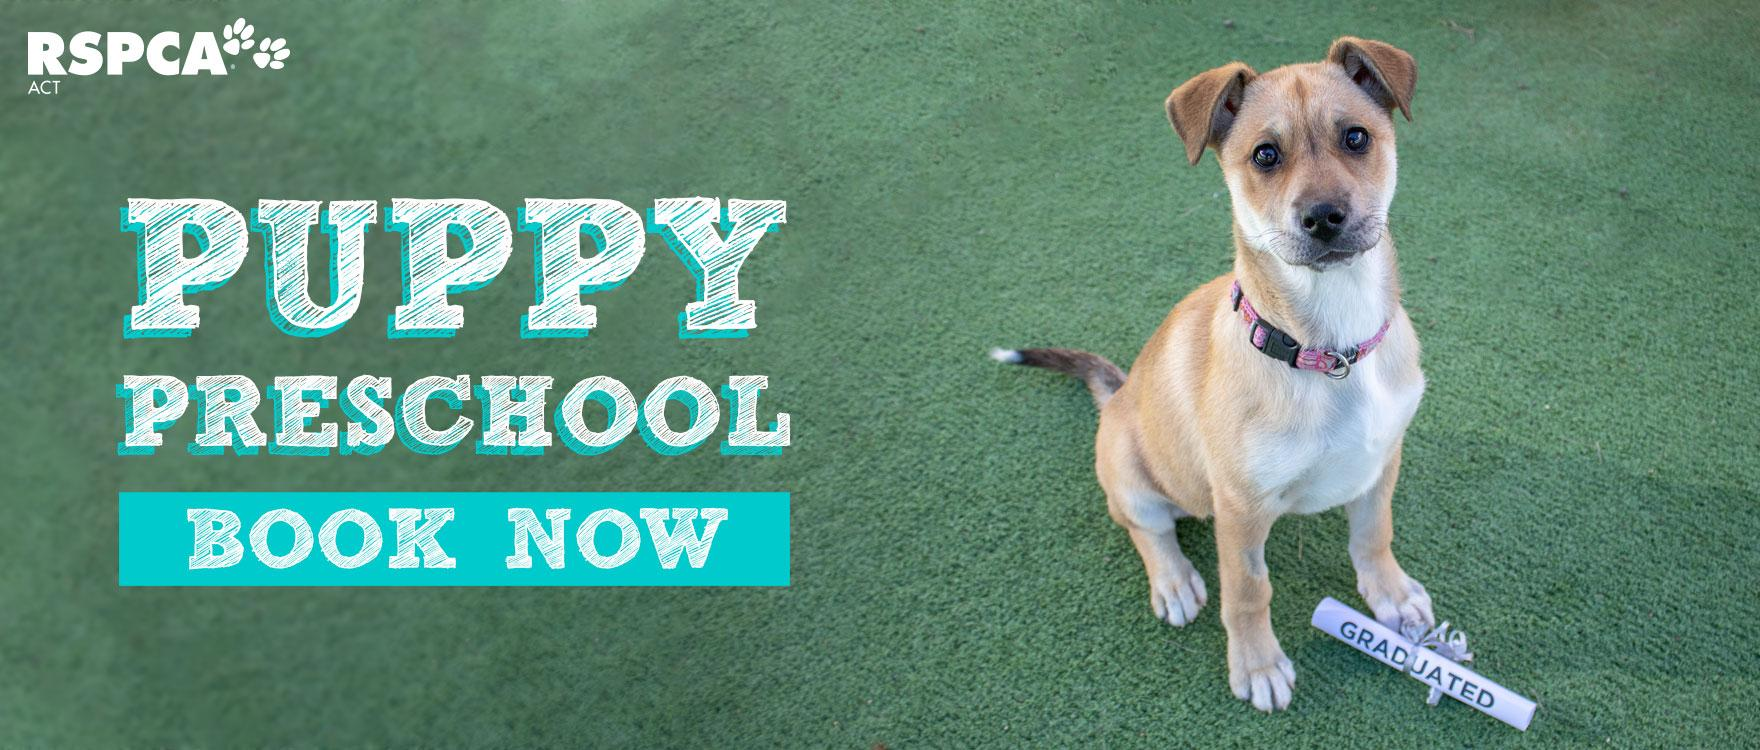 Puppy Preschool Classes available now!